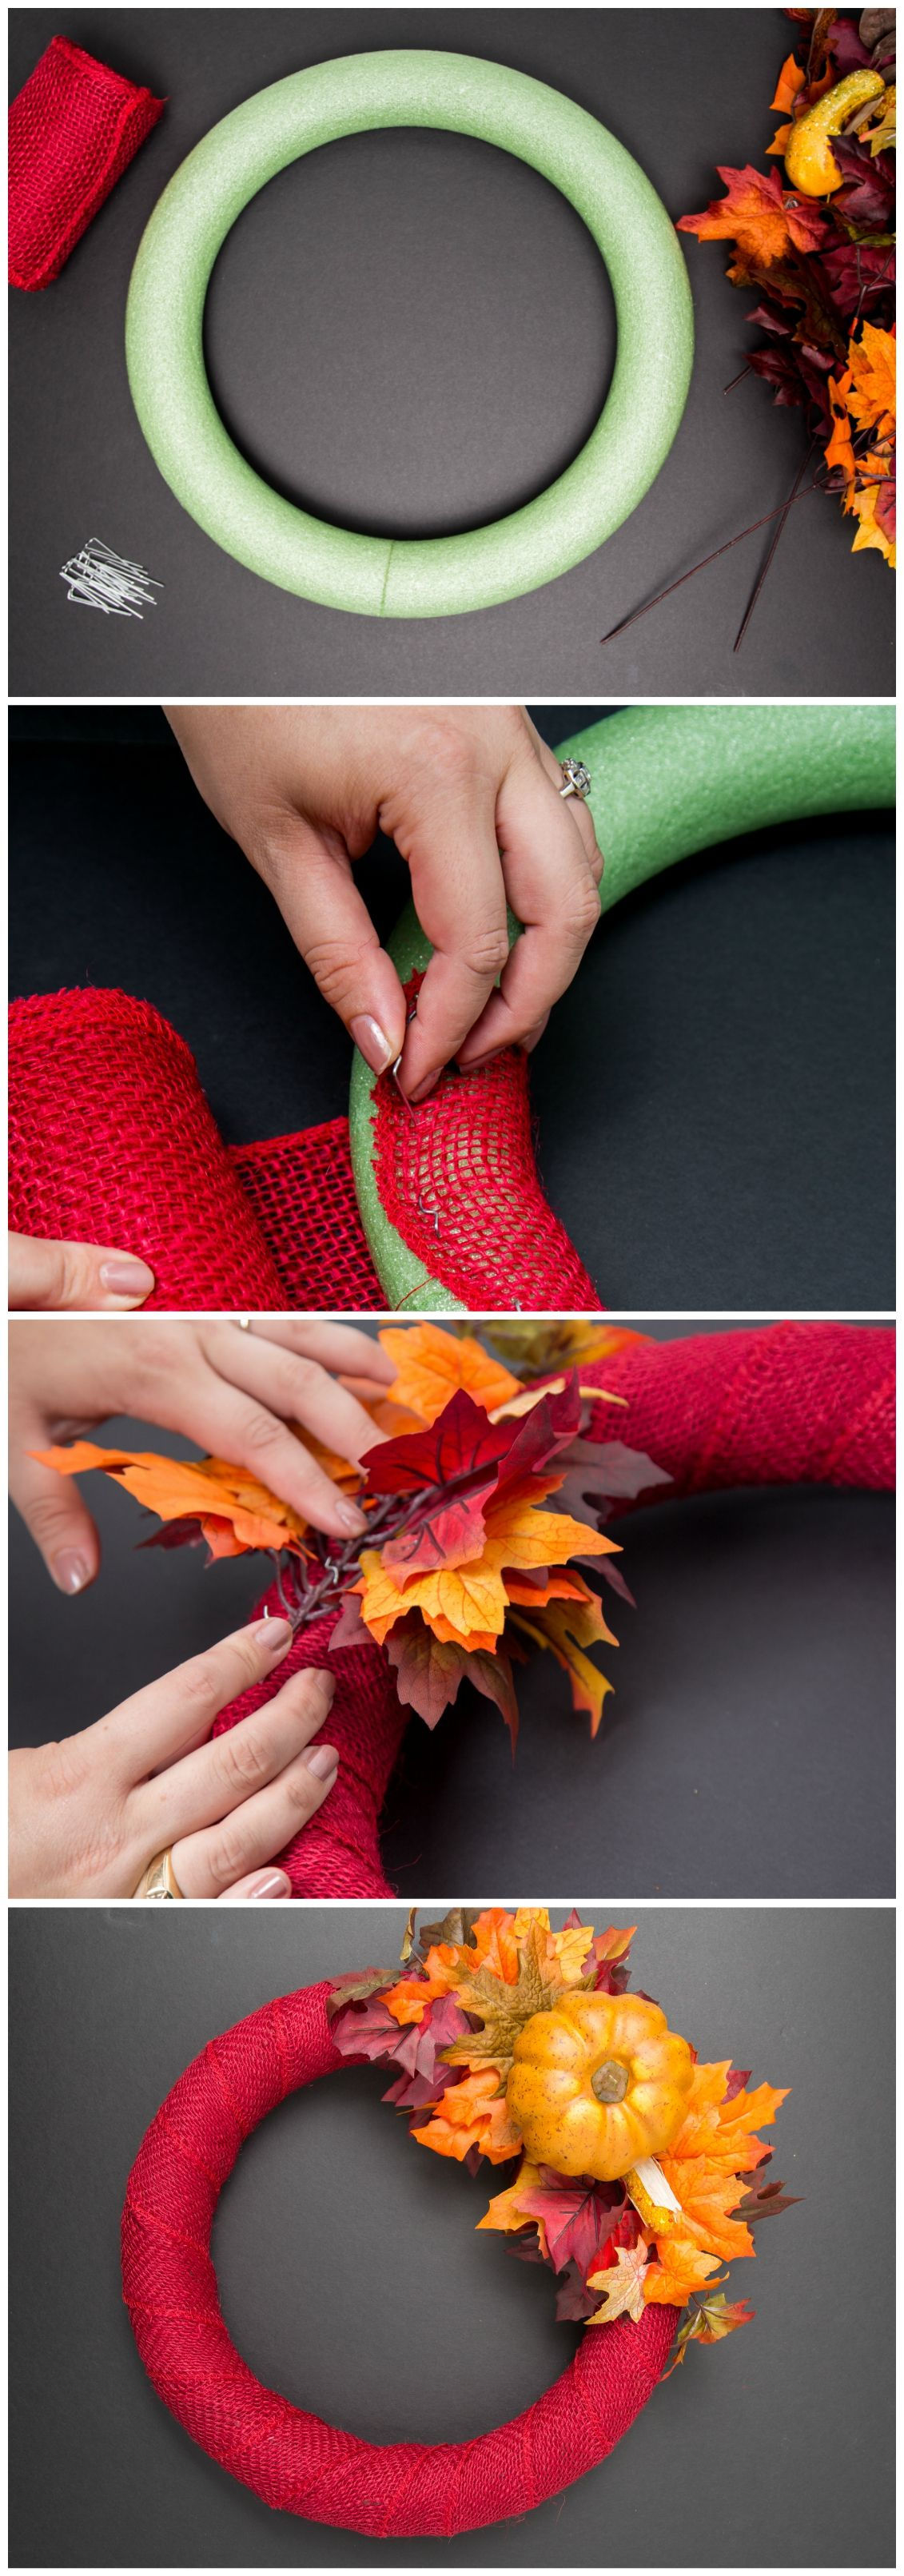 Autumnally awesome: DIY a beautiful fall wreath for your door! #diyfalldecor